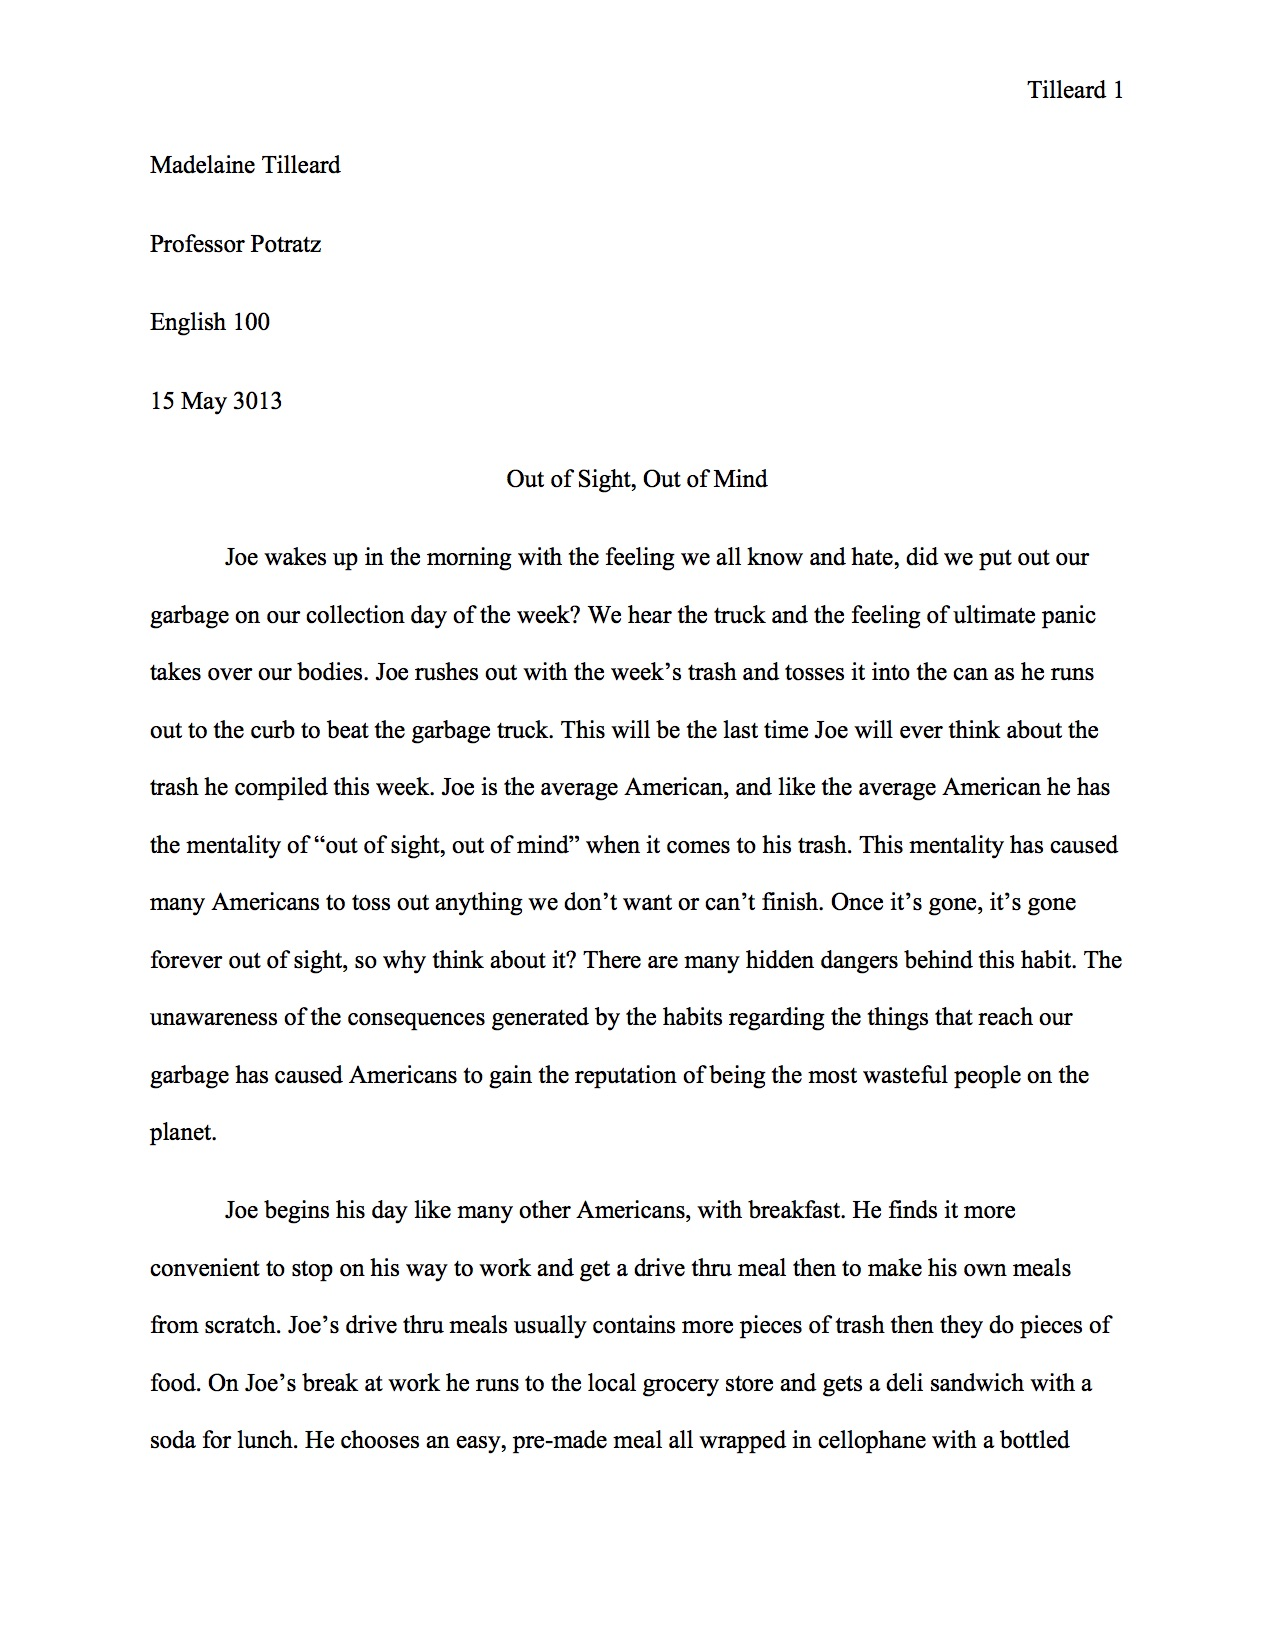 007 How To Write Critique Essay Example Resume Sample Of Critical Book Analysis Fearsome Evaluation Full